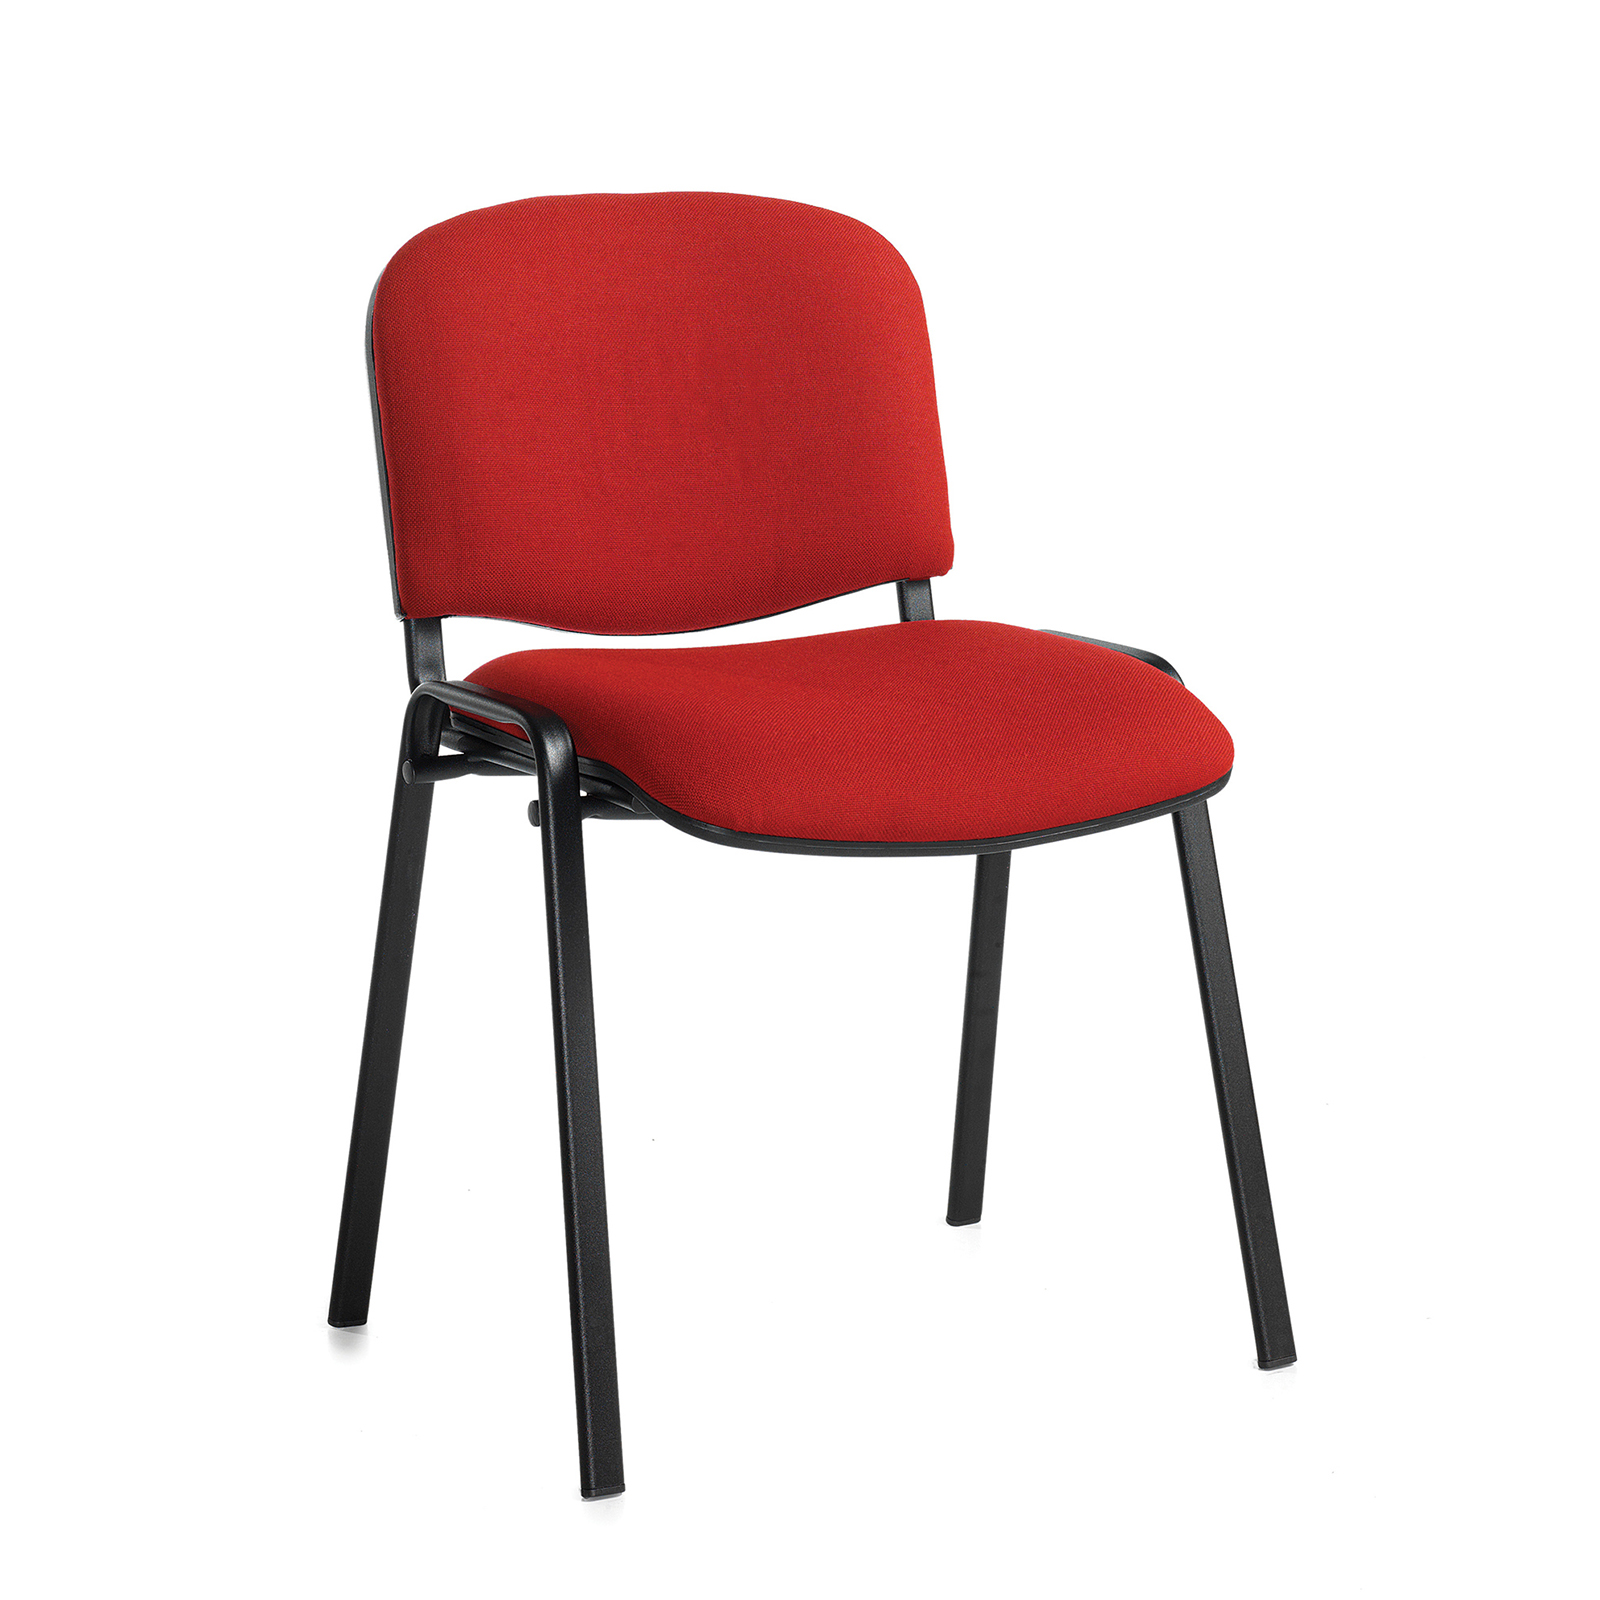 Boardroom / Meeting Taurus meeting room stackable chair with black frame and no arms - burgundy